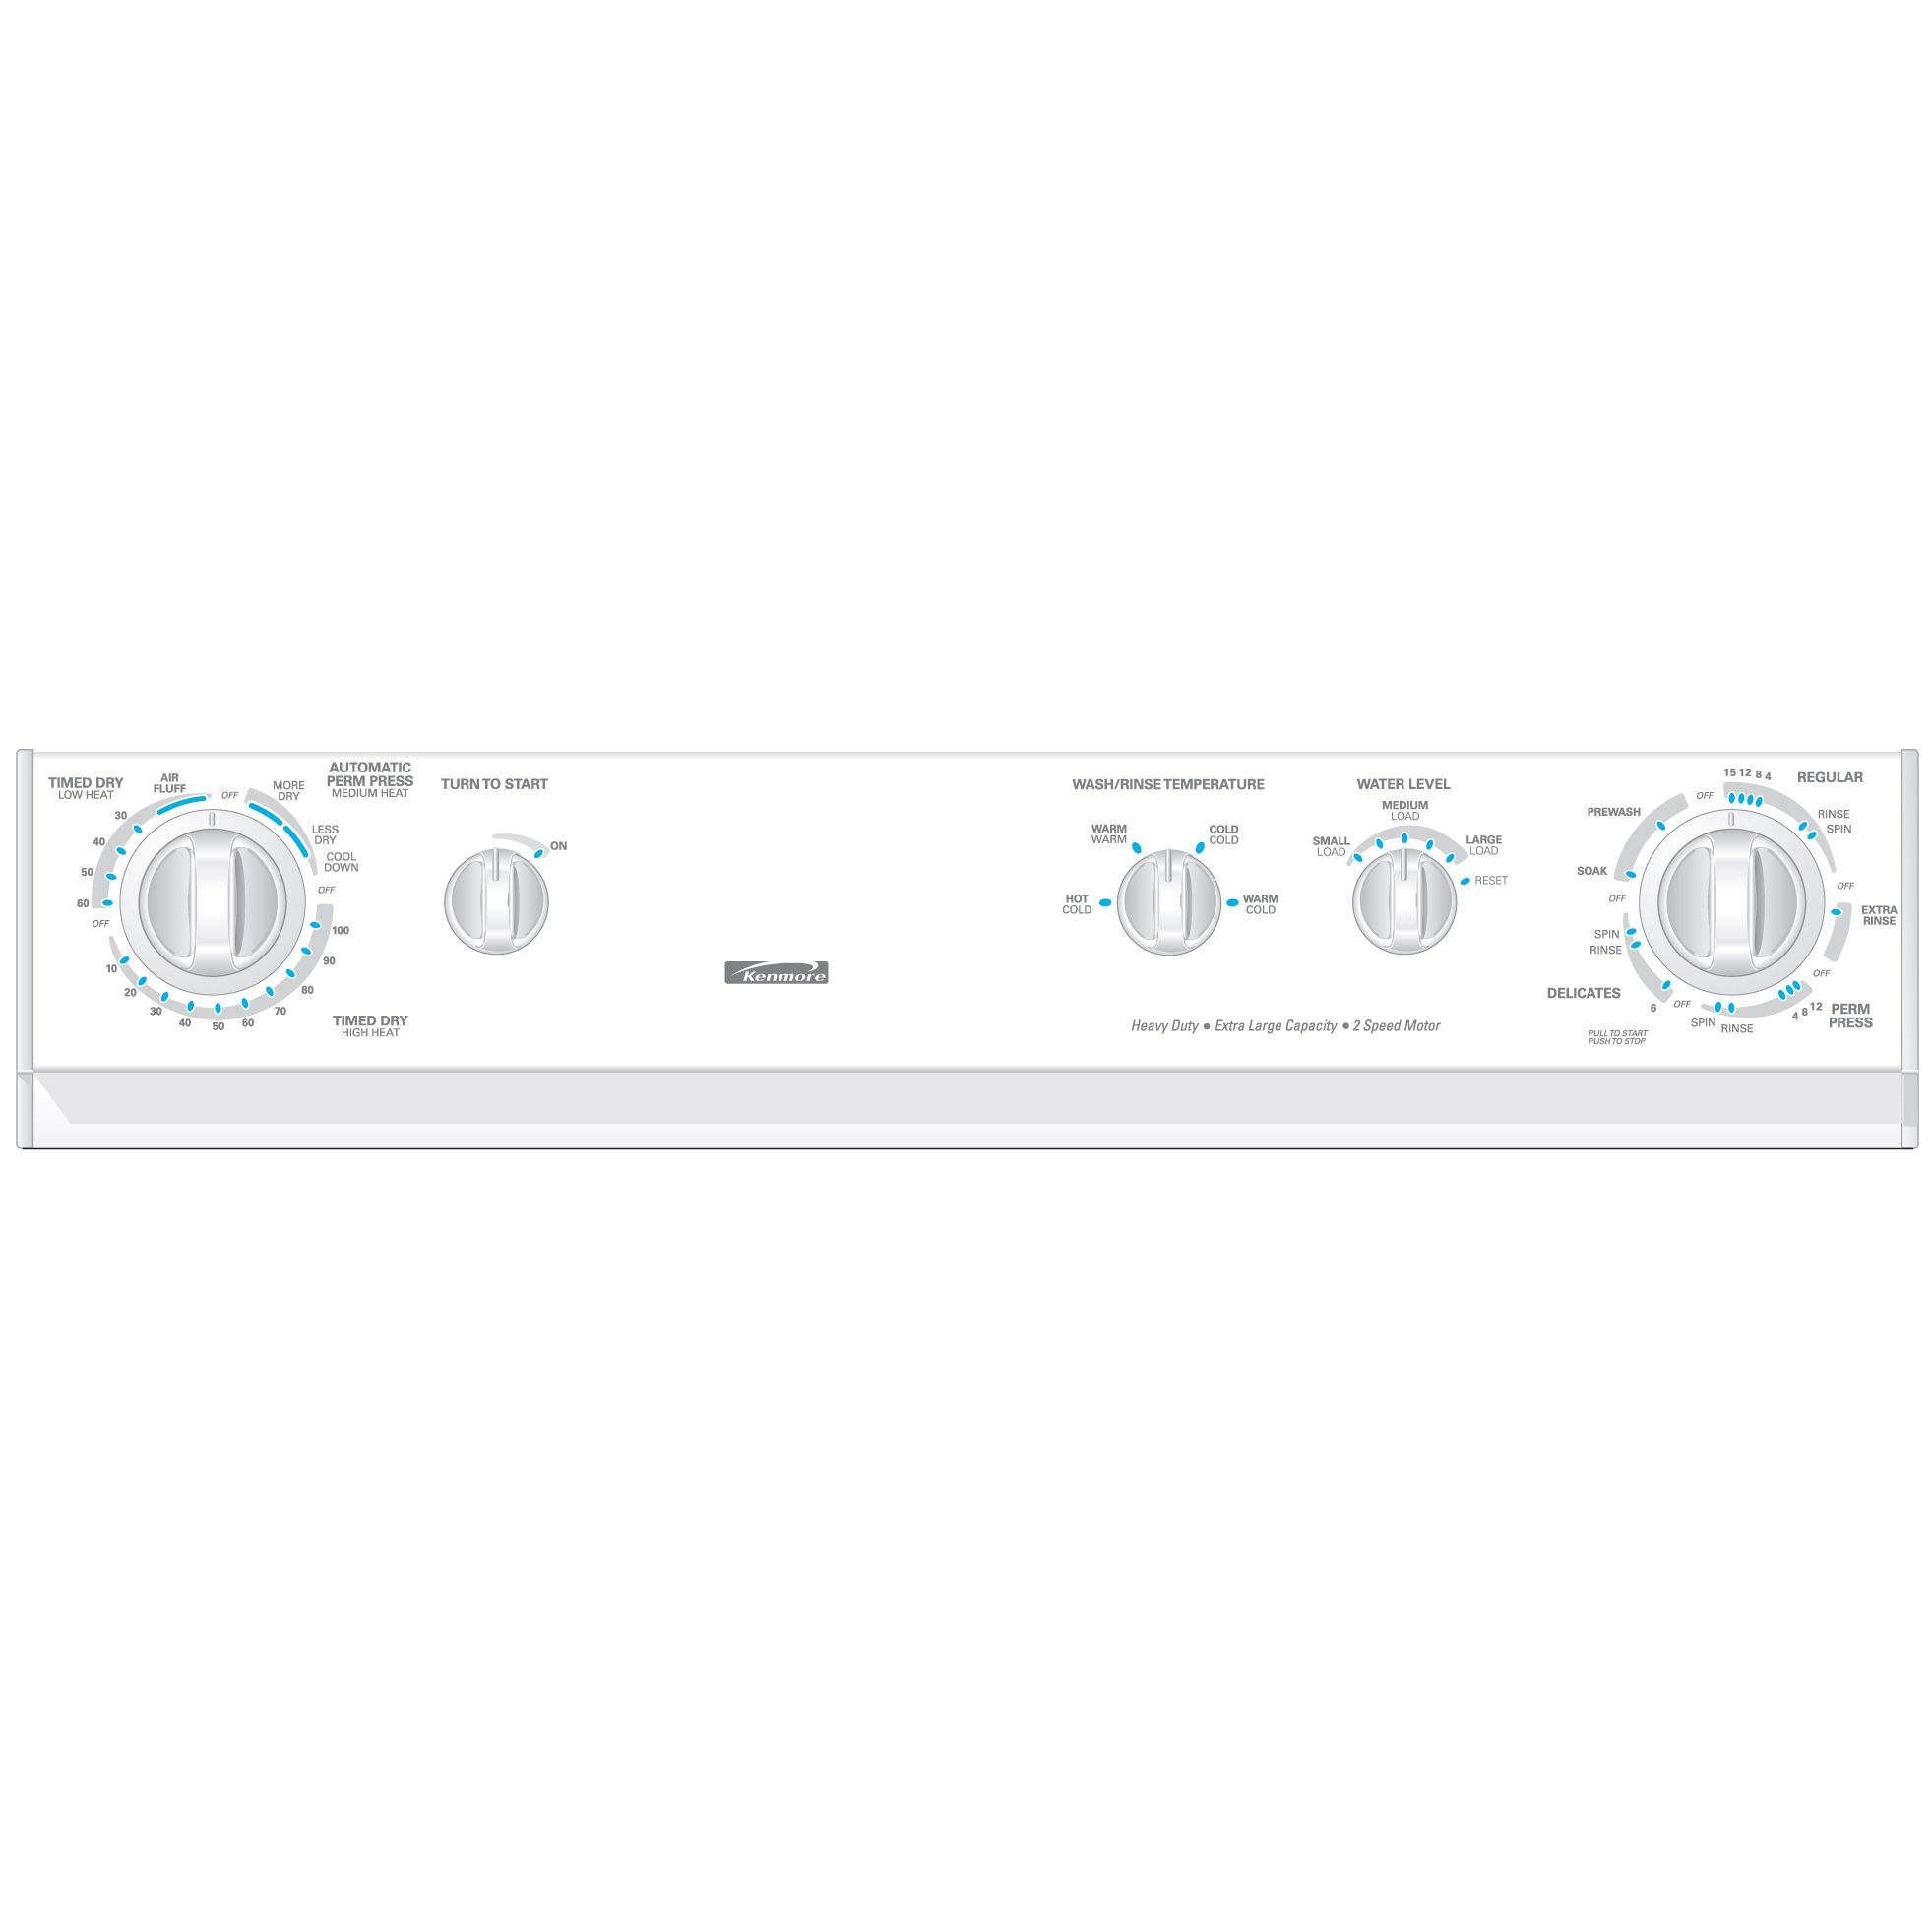 Kenmore 27 in. Electric Extra Large Capacity Laundry Center with Dryer - 9781